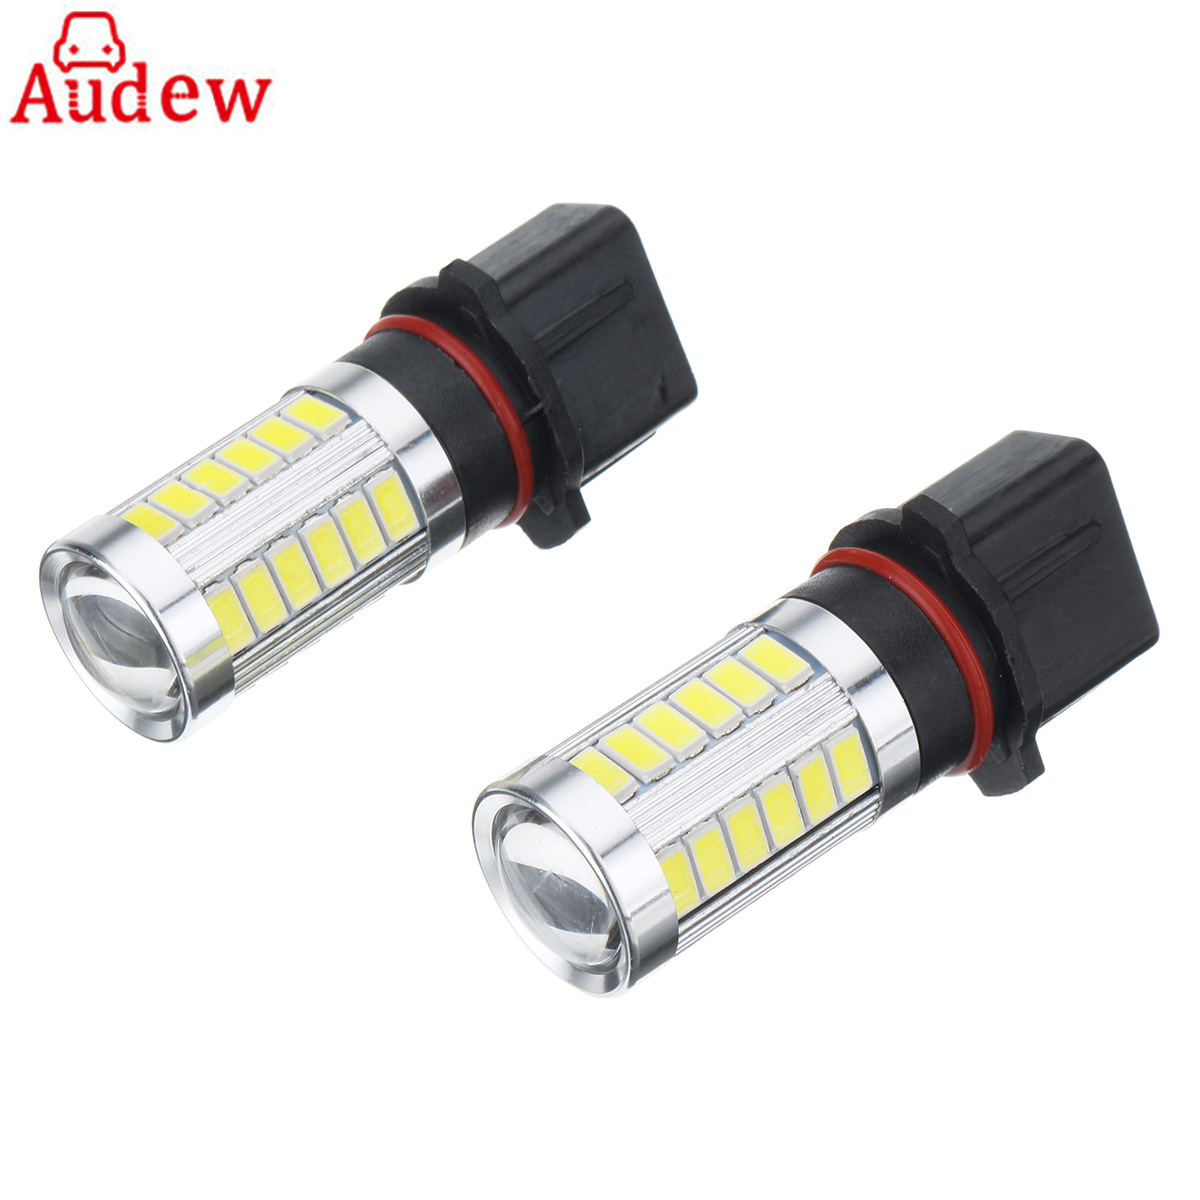 2pcs P13W Car High Power LED Bulbs Daytime Running Lights PSX26W Fog Lamps LED Bulbs for Audi A4/B8/Q5 for Mazda for Toyota for lexus rx gyl1 ggl15 agl10 450h awd 350 awd 2008 2013 car styling led fog lights high brightness fog lamps 1set